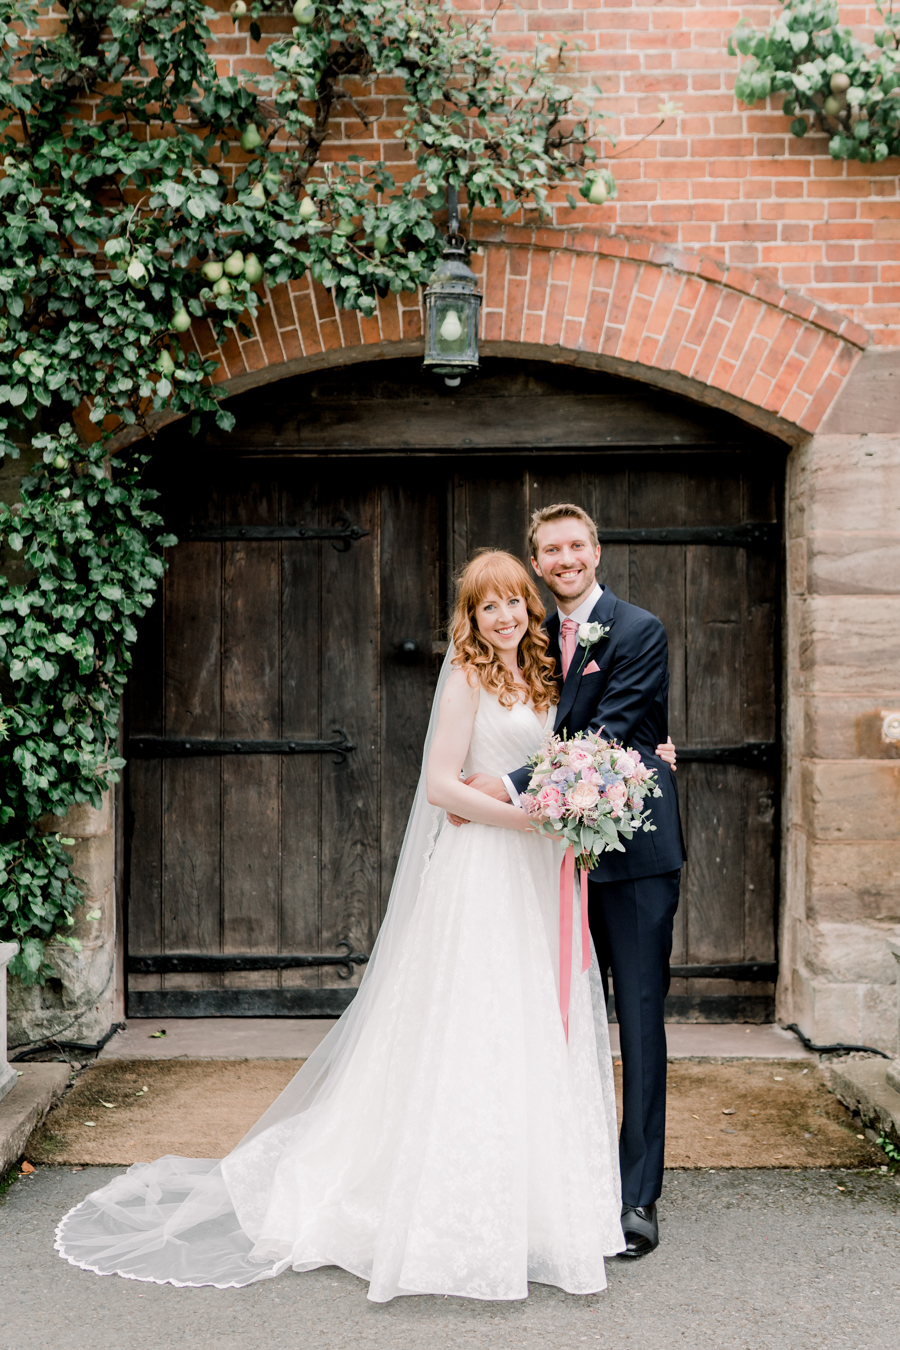 Fine art wedding photography blog from Brinsop Court UK, images by Joanna Briggs Photography (14)